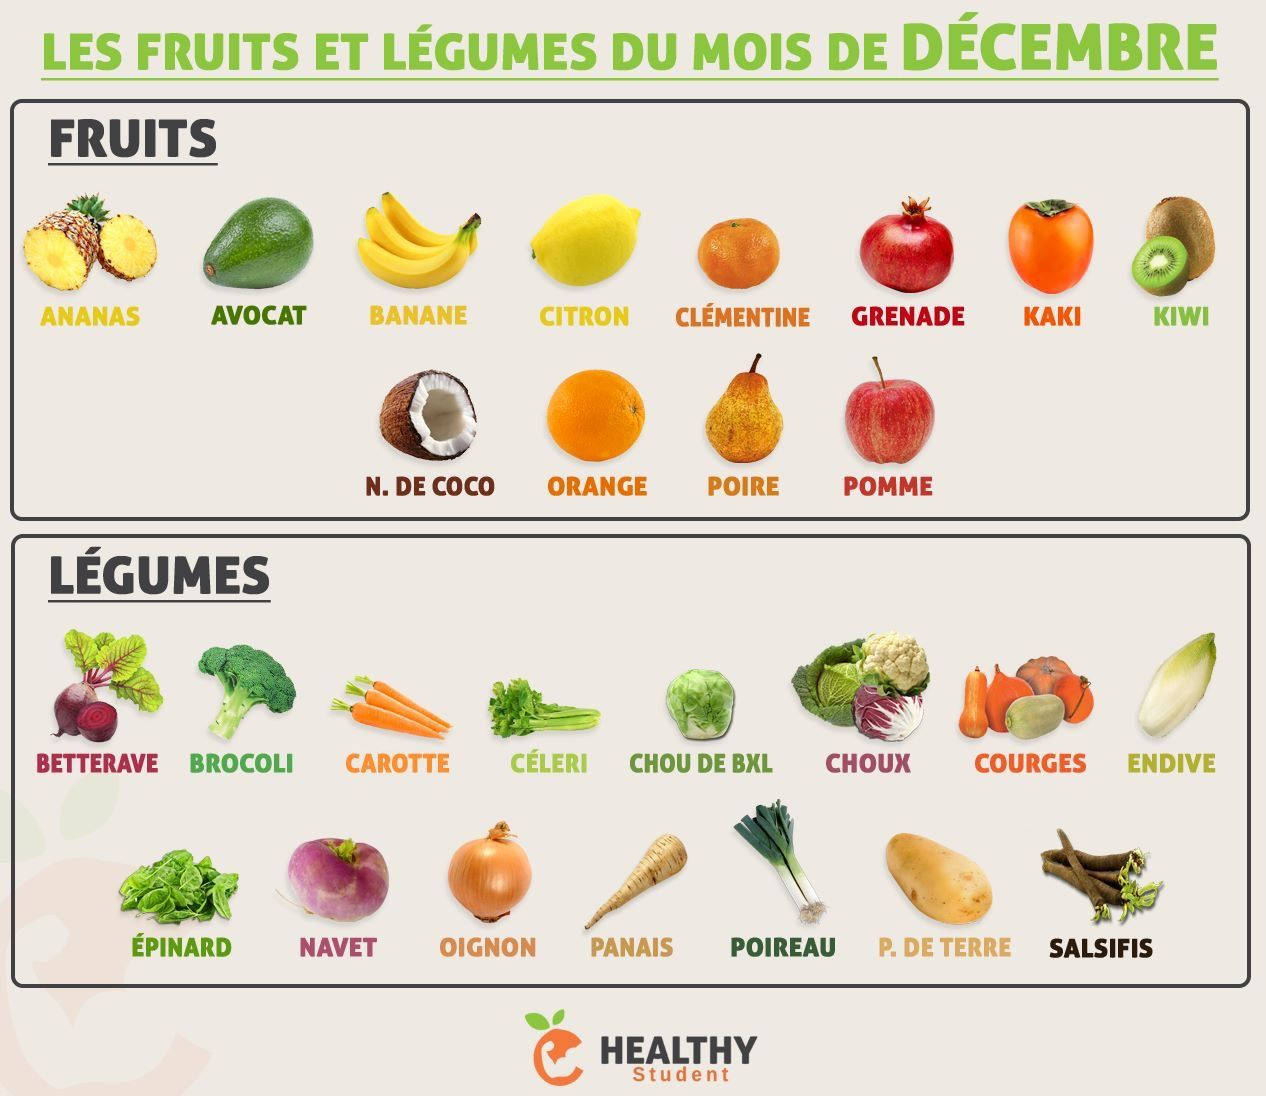 petit calendrier des fruits et l gumes du mois de d cembre healthy student pour me suivre. Black Bedroom Furniture Sets. Home Design Ideas